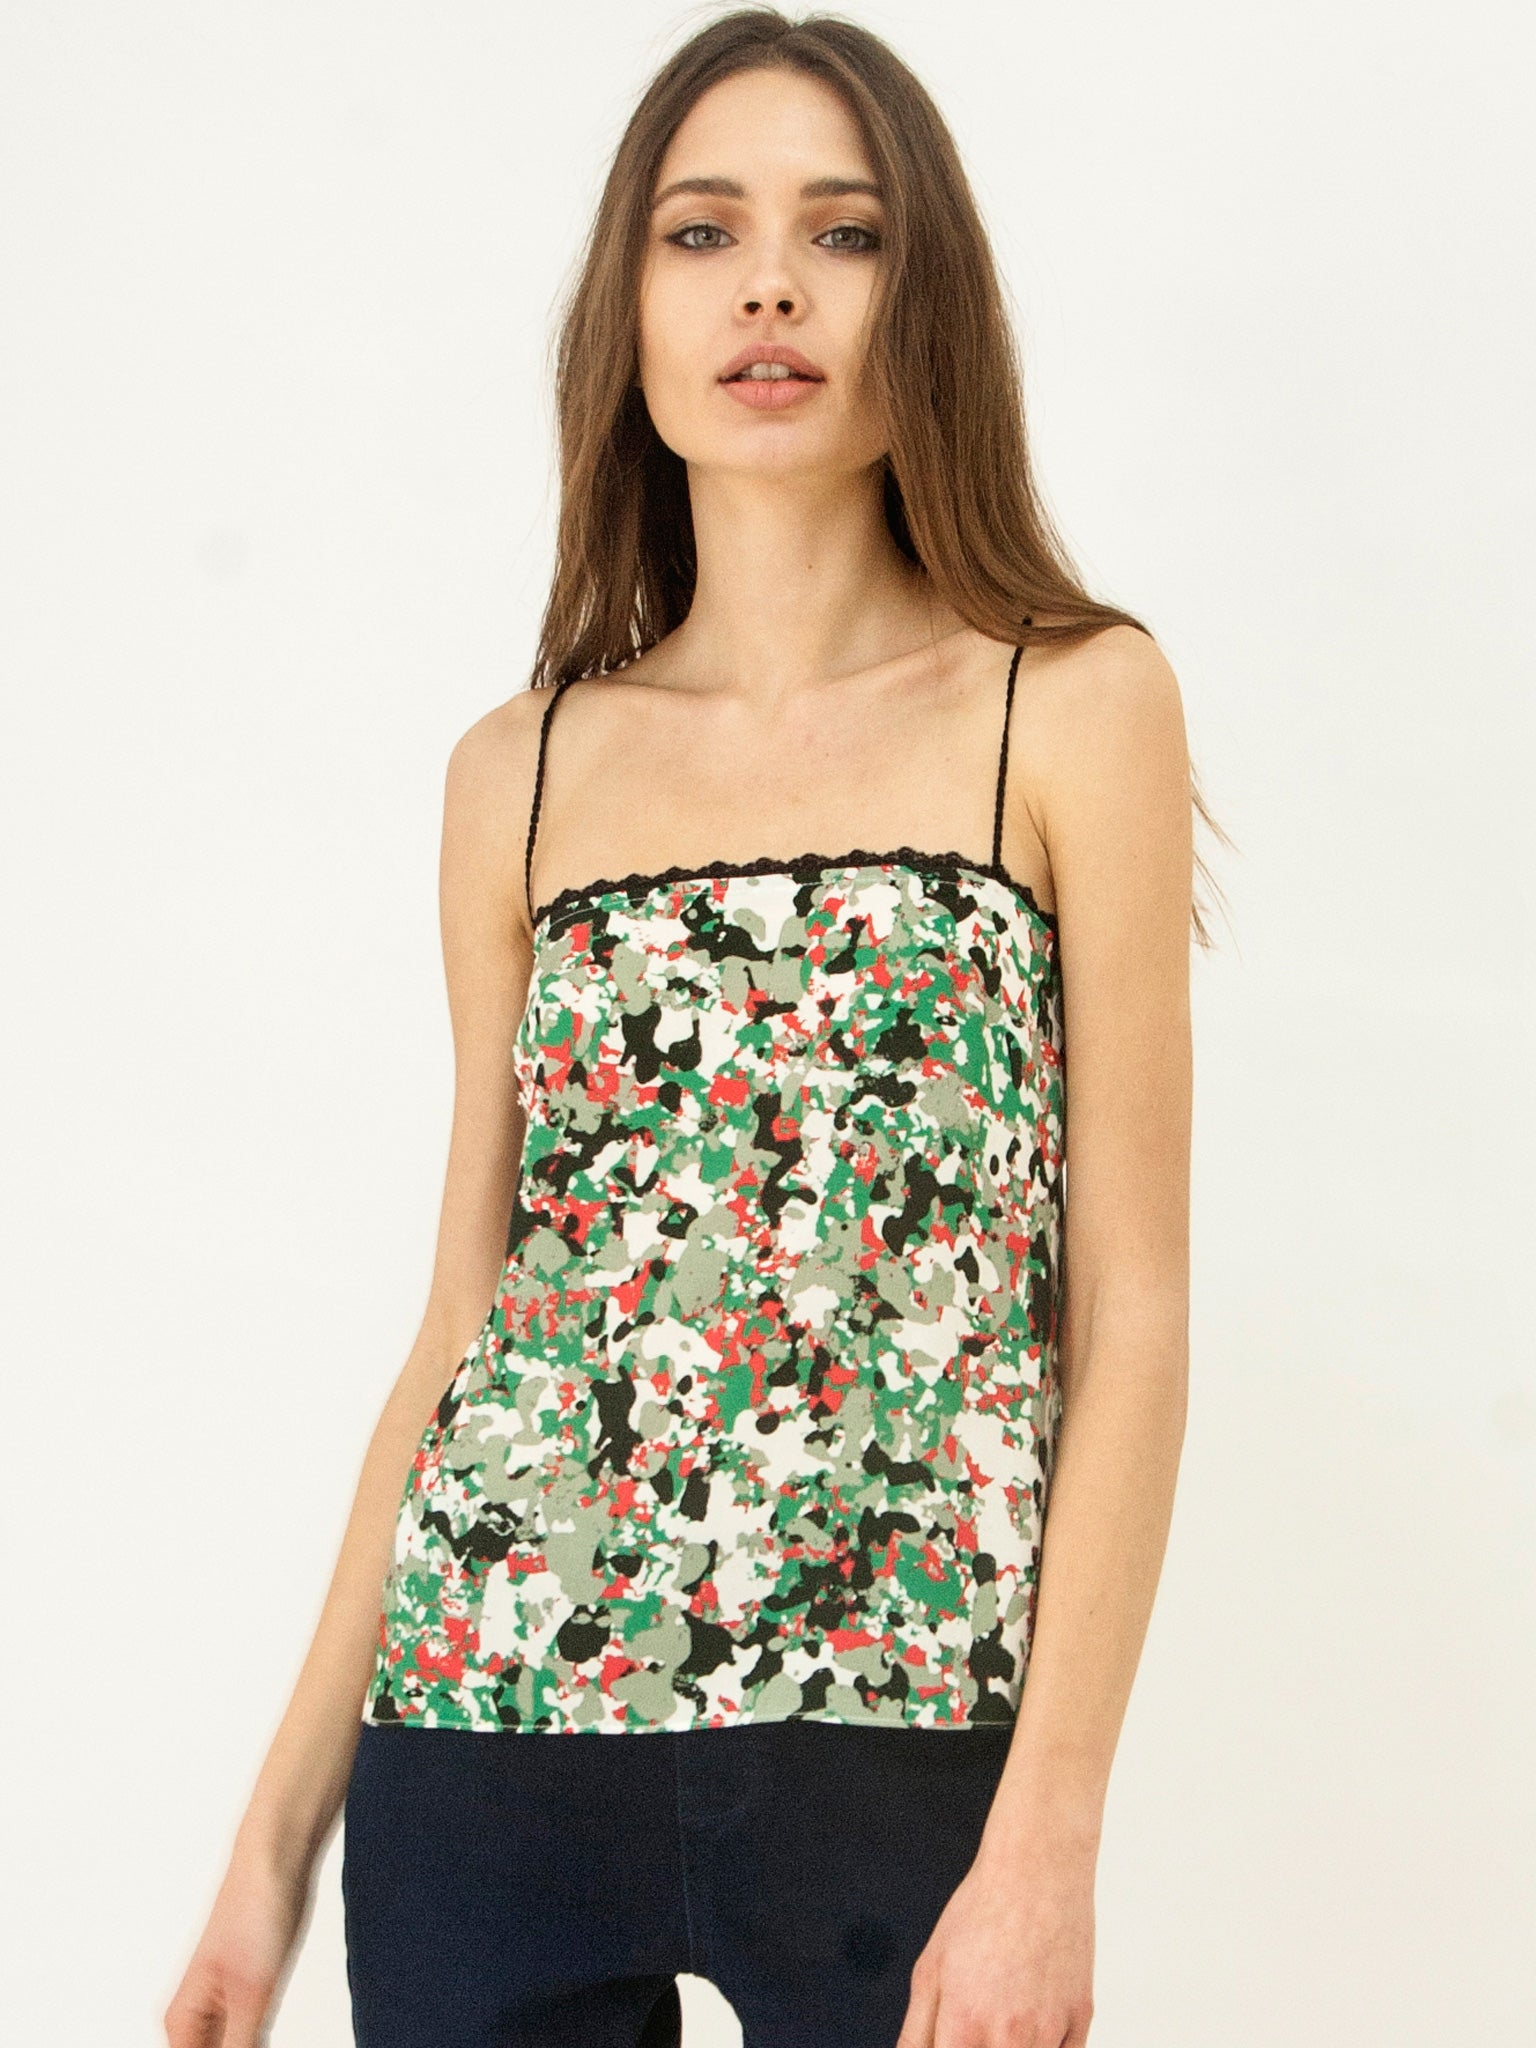 Sweet Camouflage Camisole